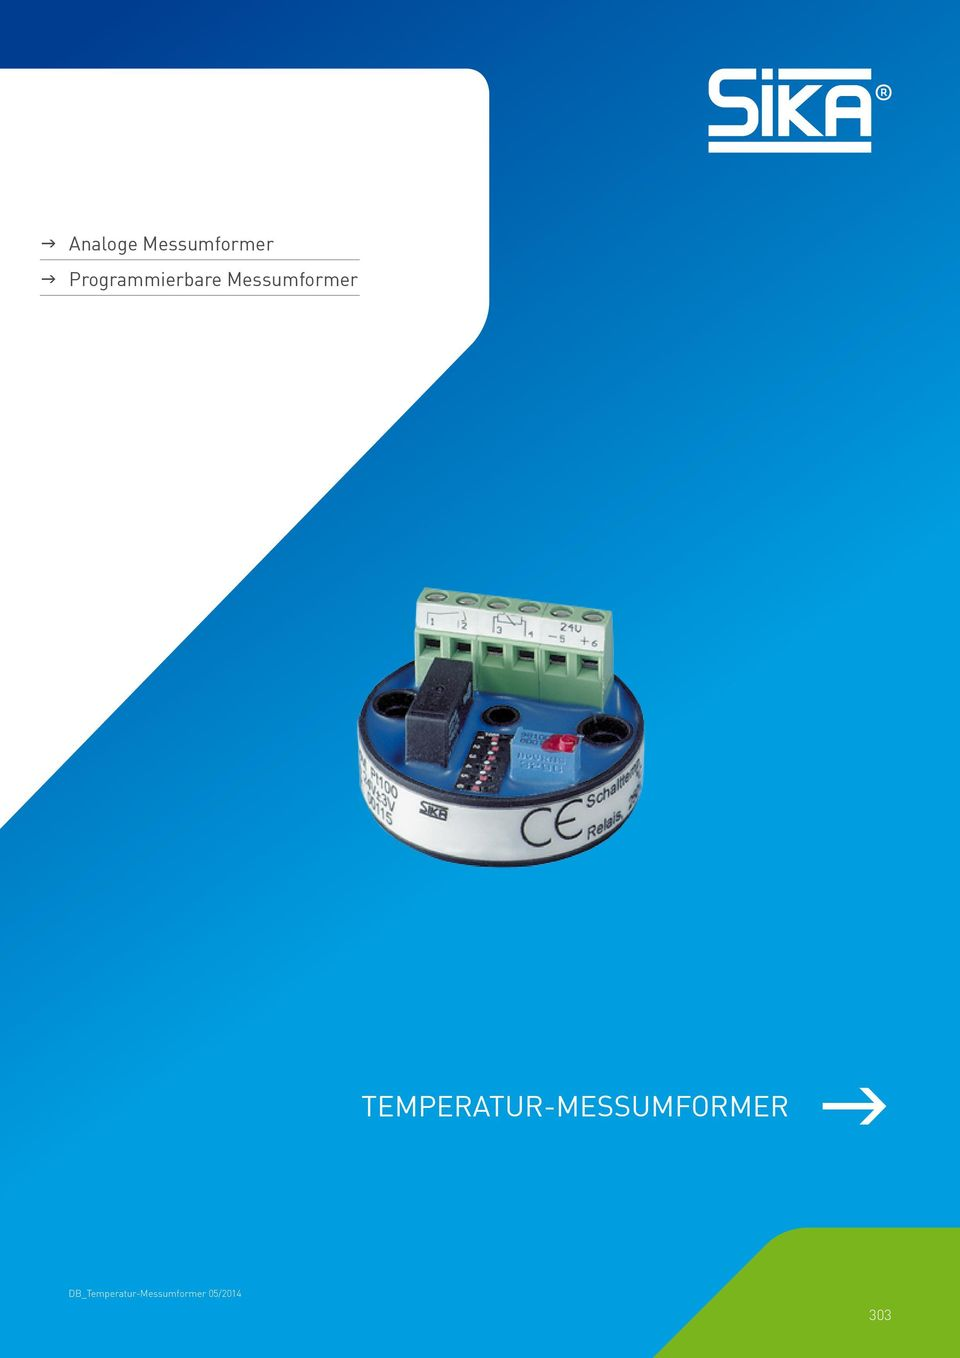 TEMPERATUR-MESSUMFORMER